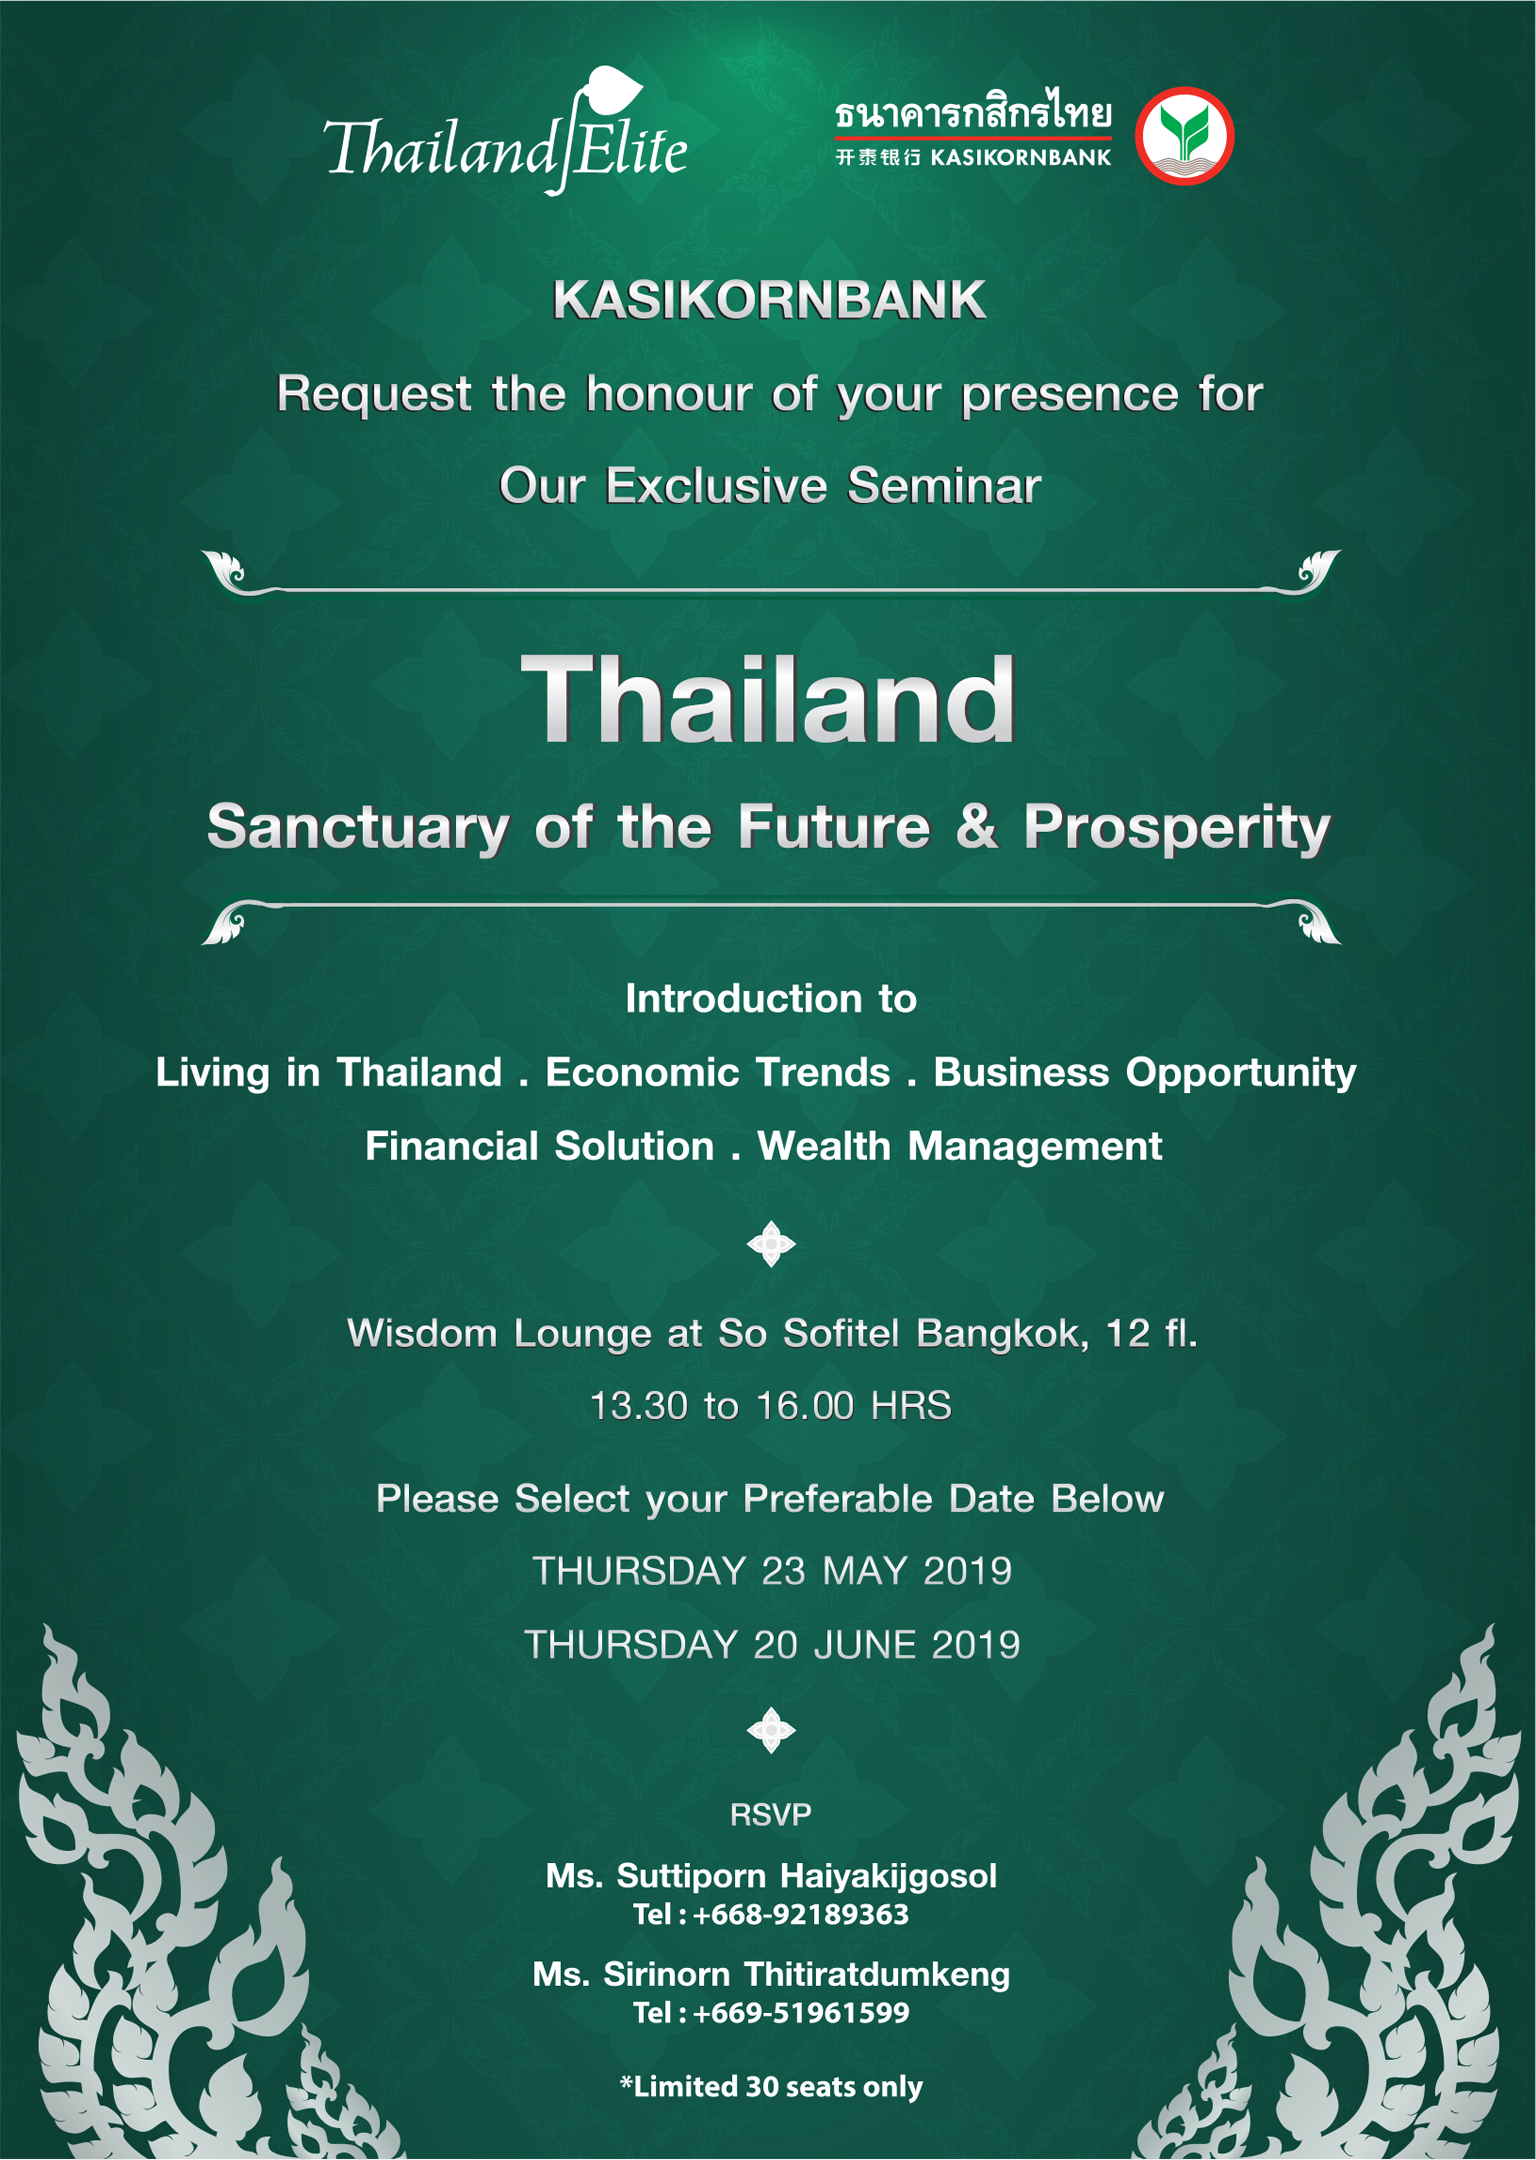 PRIVILEGES NEWS MAY 2019 - Thailand Elite Official website